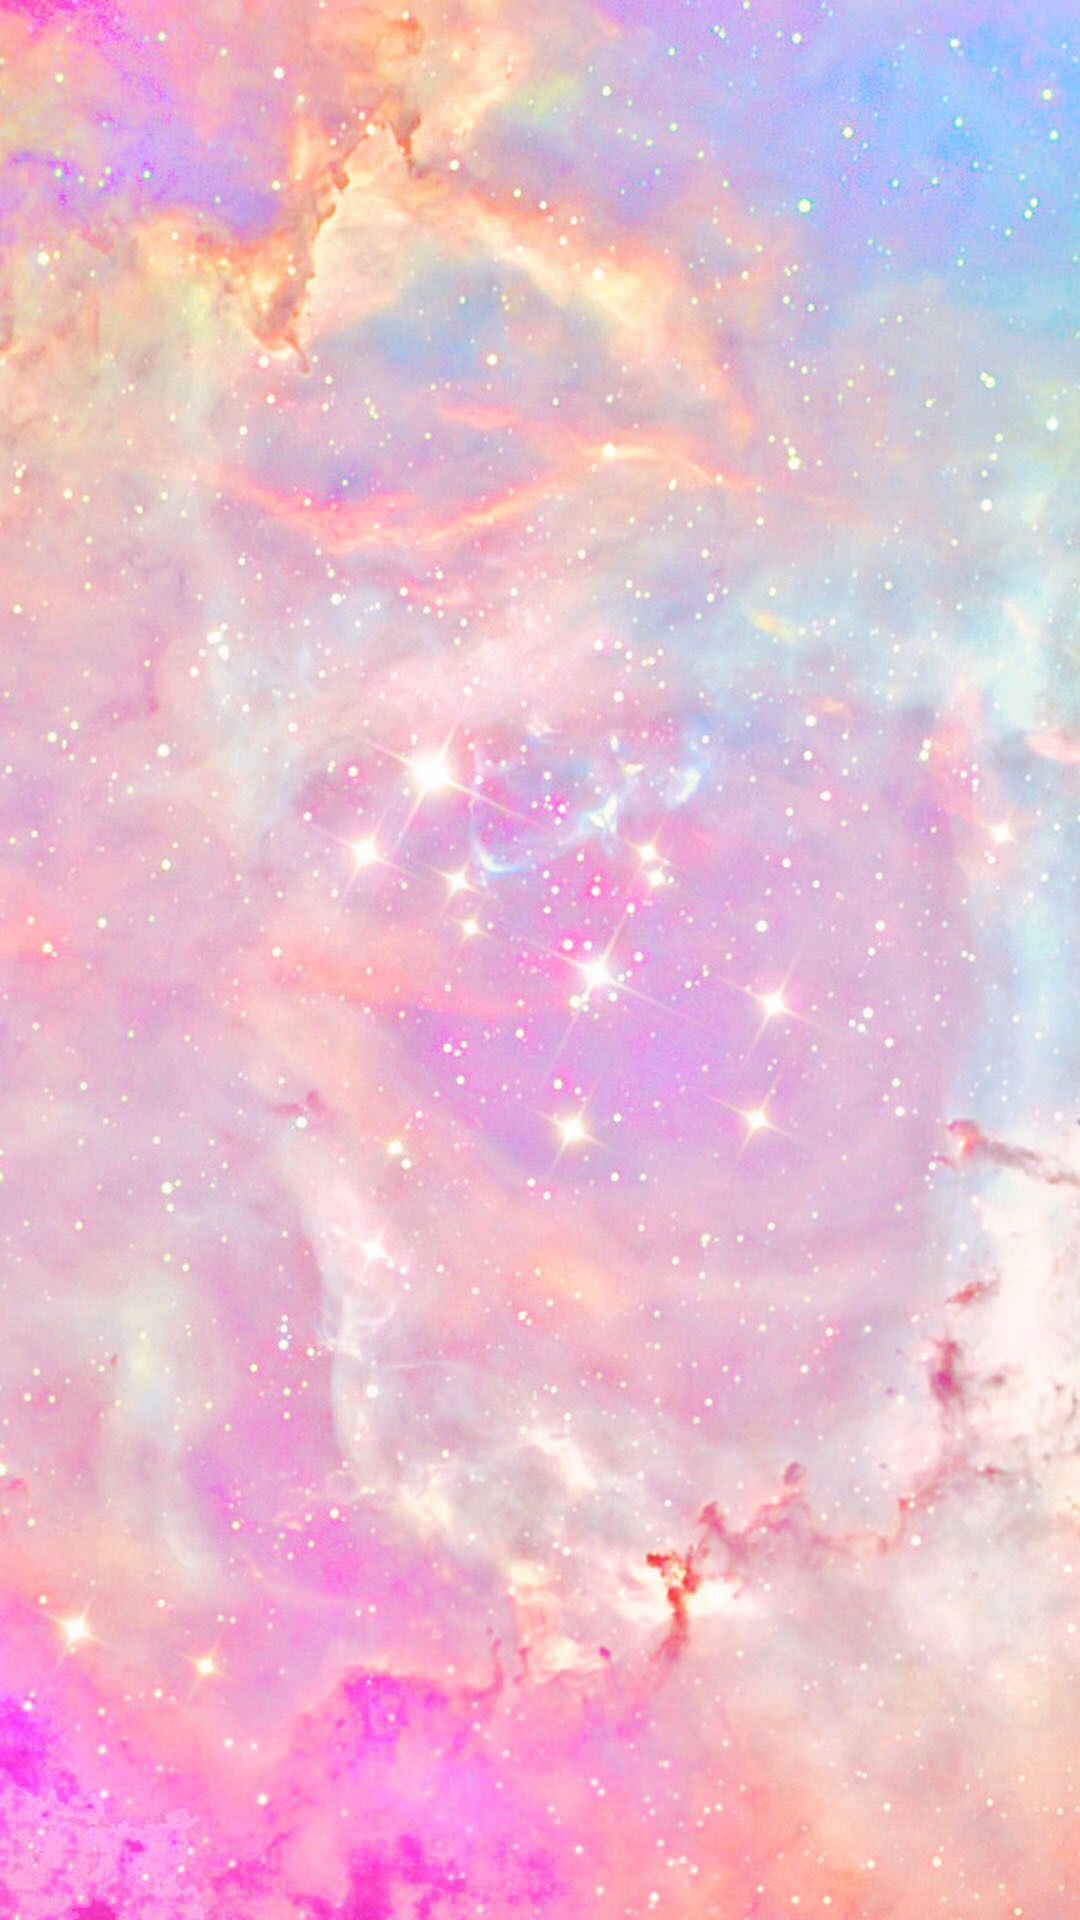 Girly outer space Galaxy wallpaper iphone, Pretty